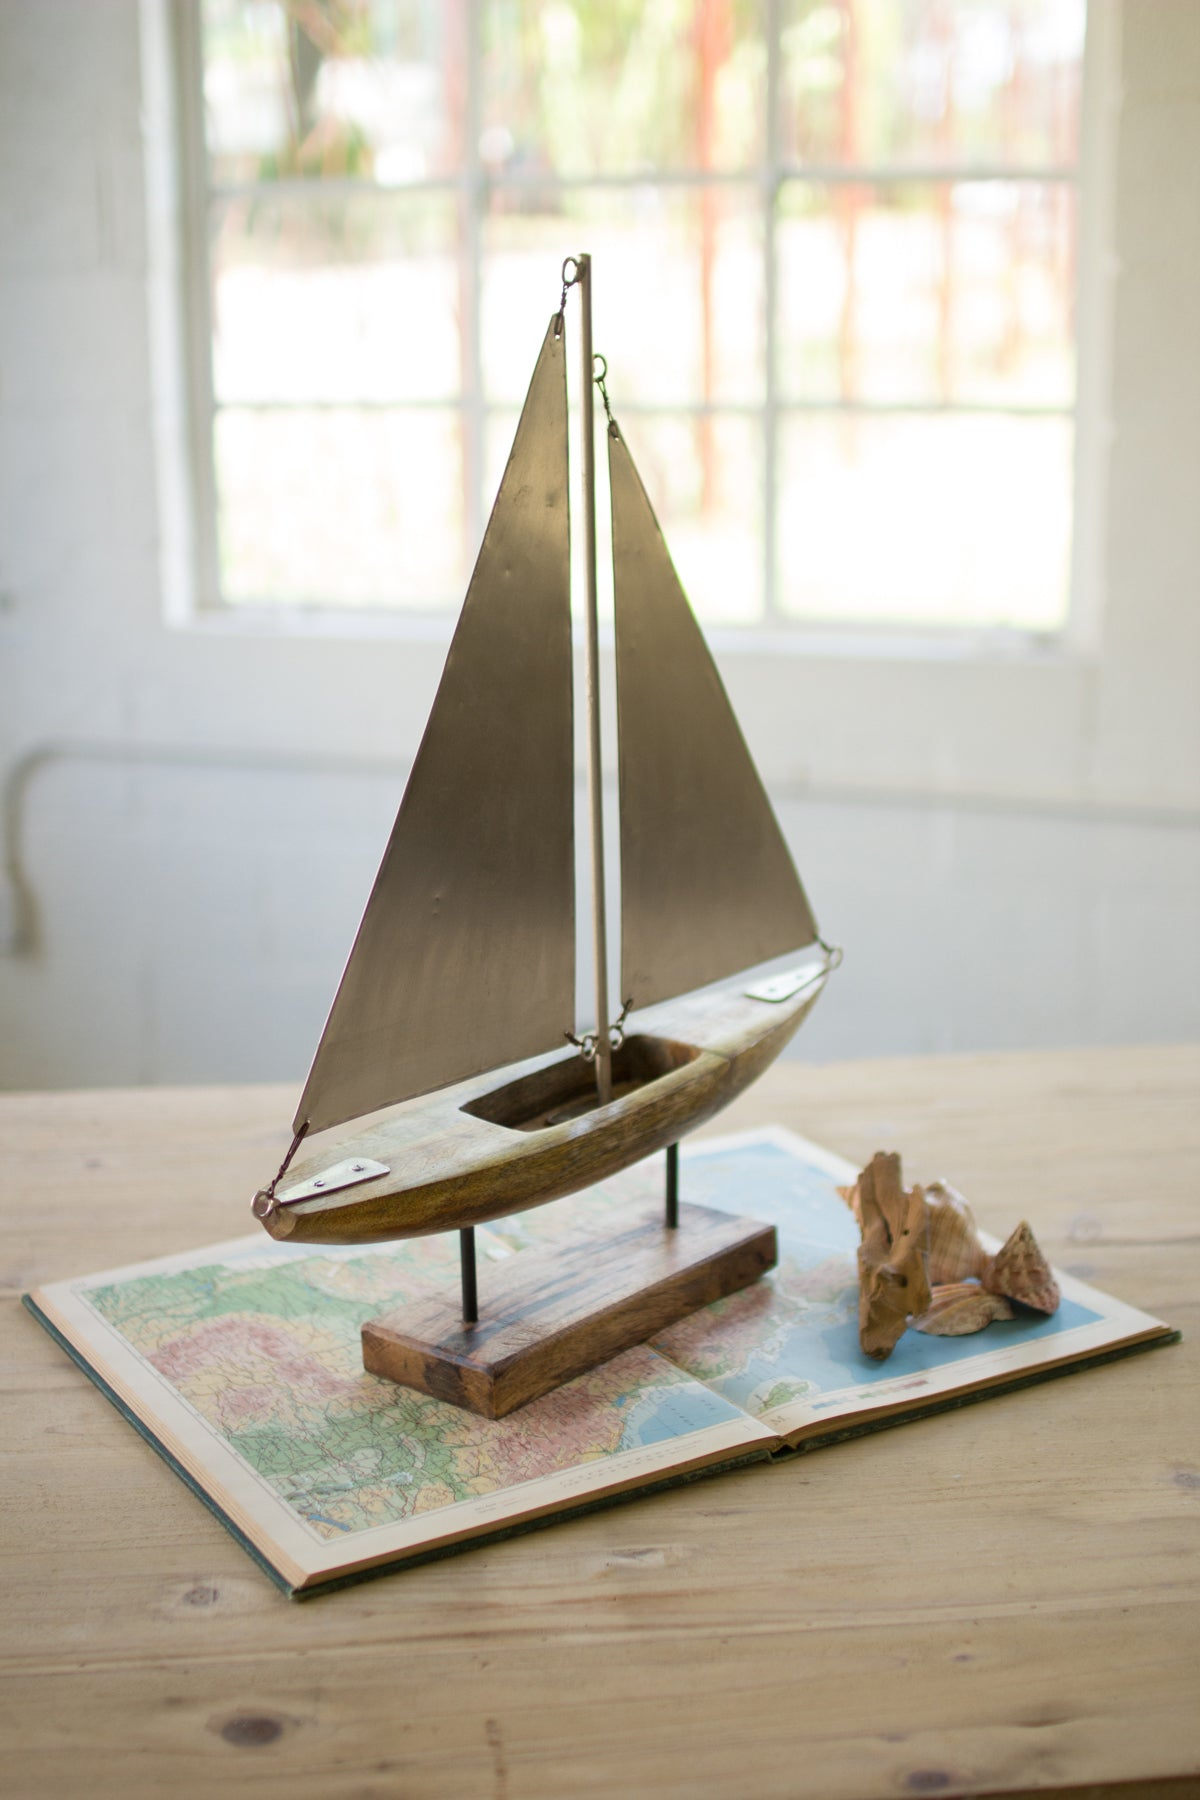 Carved Wooden Sailboat with Metal Sails on a Stand - 22-in